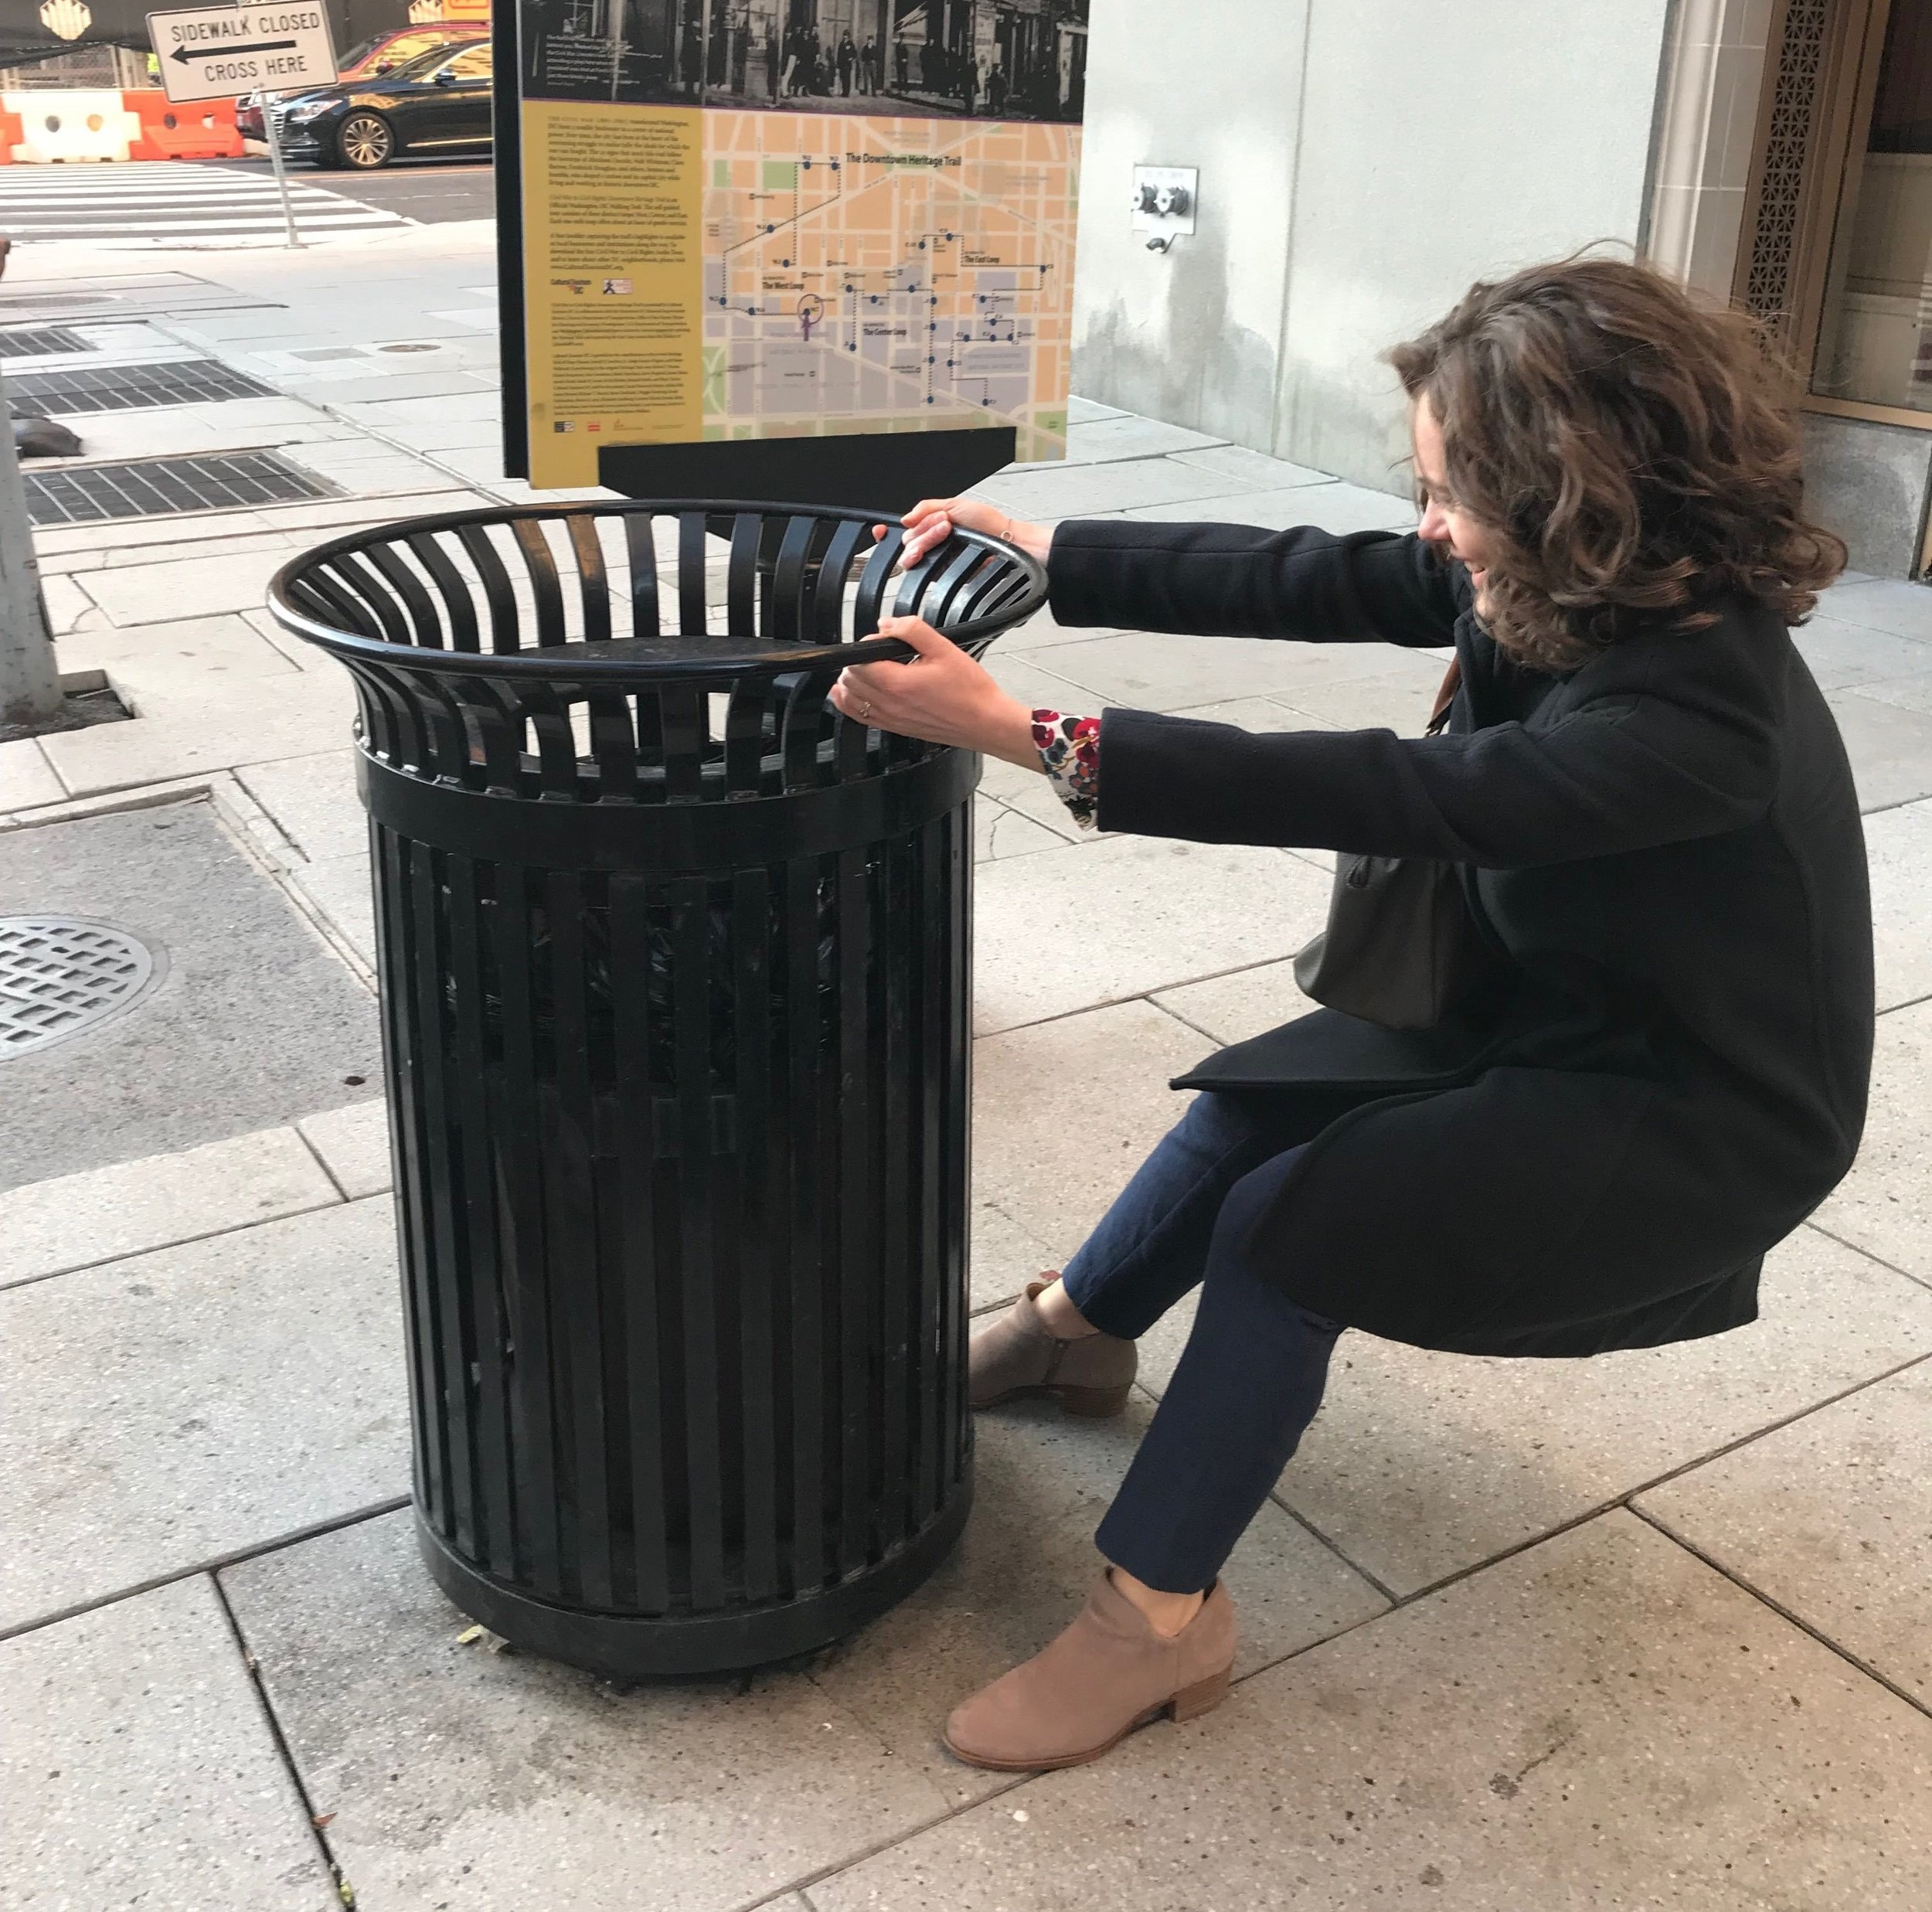 Senior Operations Analyst, Karissa Minnich, tugs on a city trash can for the Smartcans project to see if it's bolted to the sidewalk. It is. (Credit: The Lab @ DC)